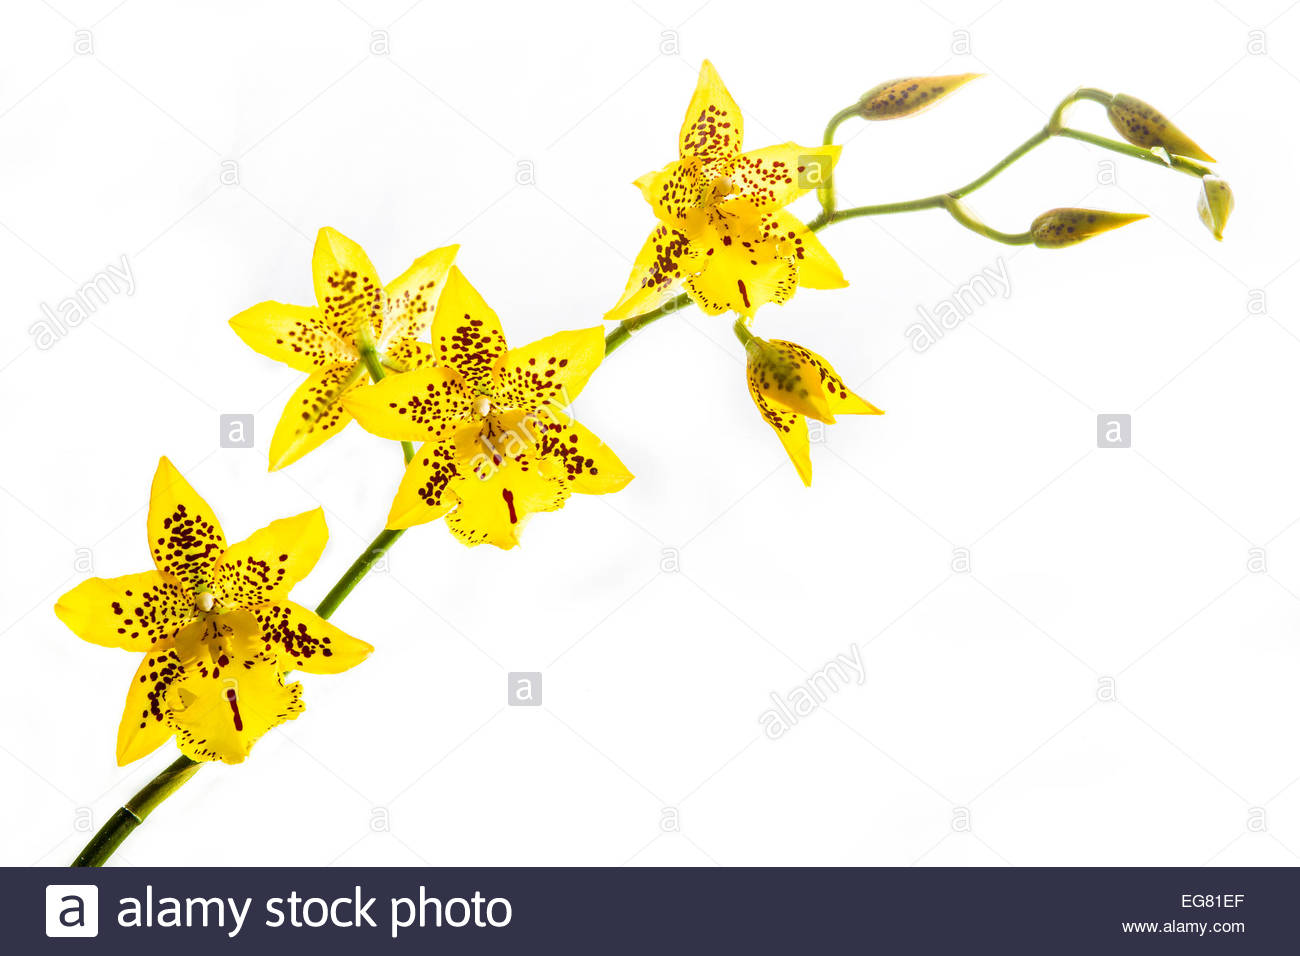 Cambria Spider Orchid. Pot Plant Stock Photo, Royalty Free Image.